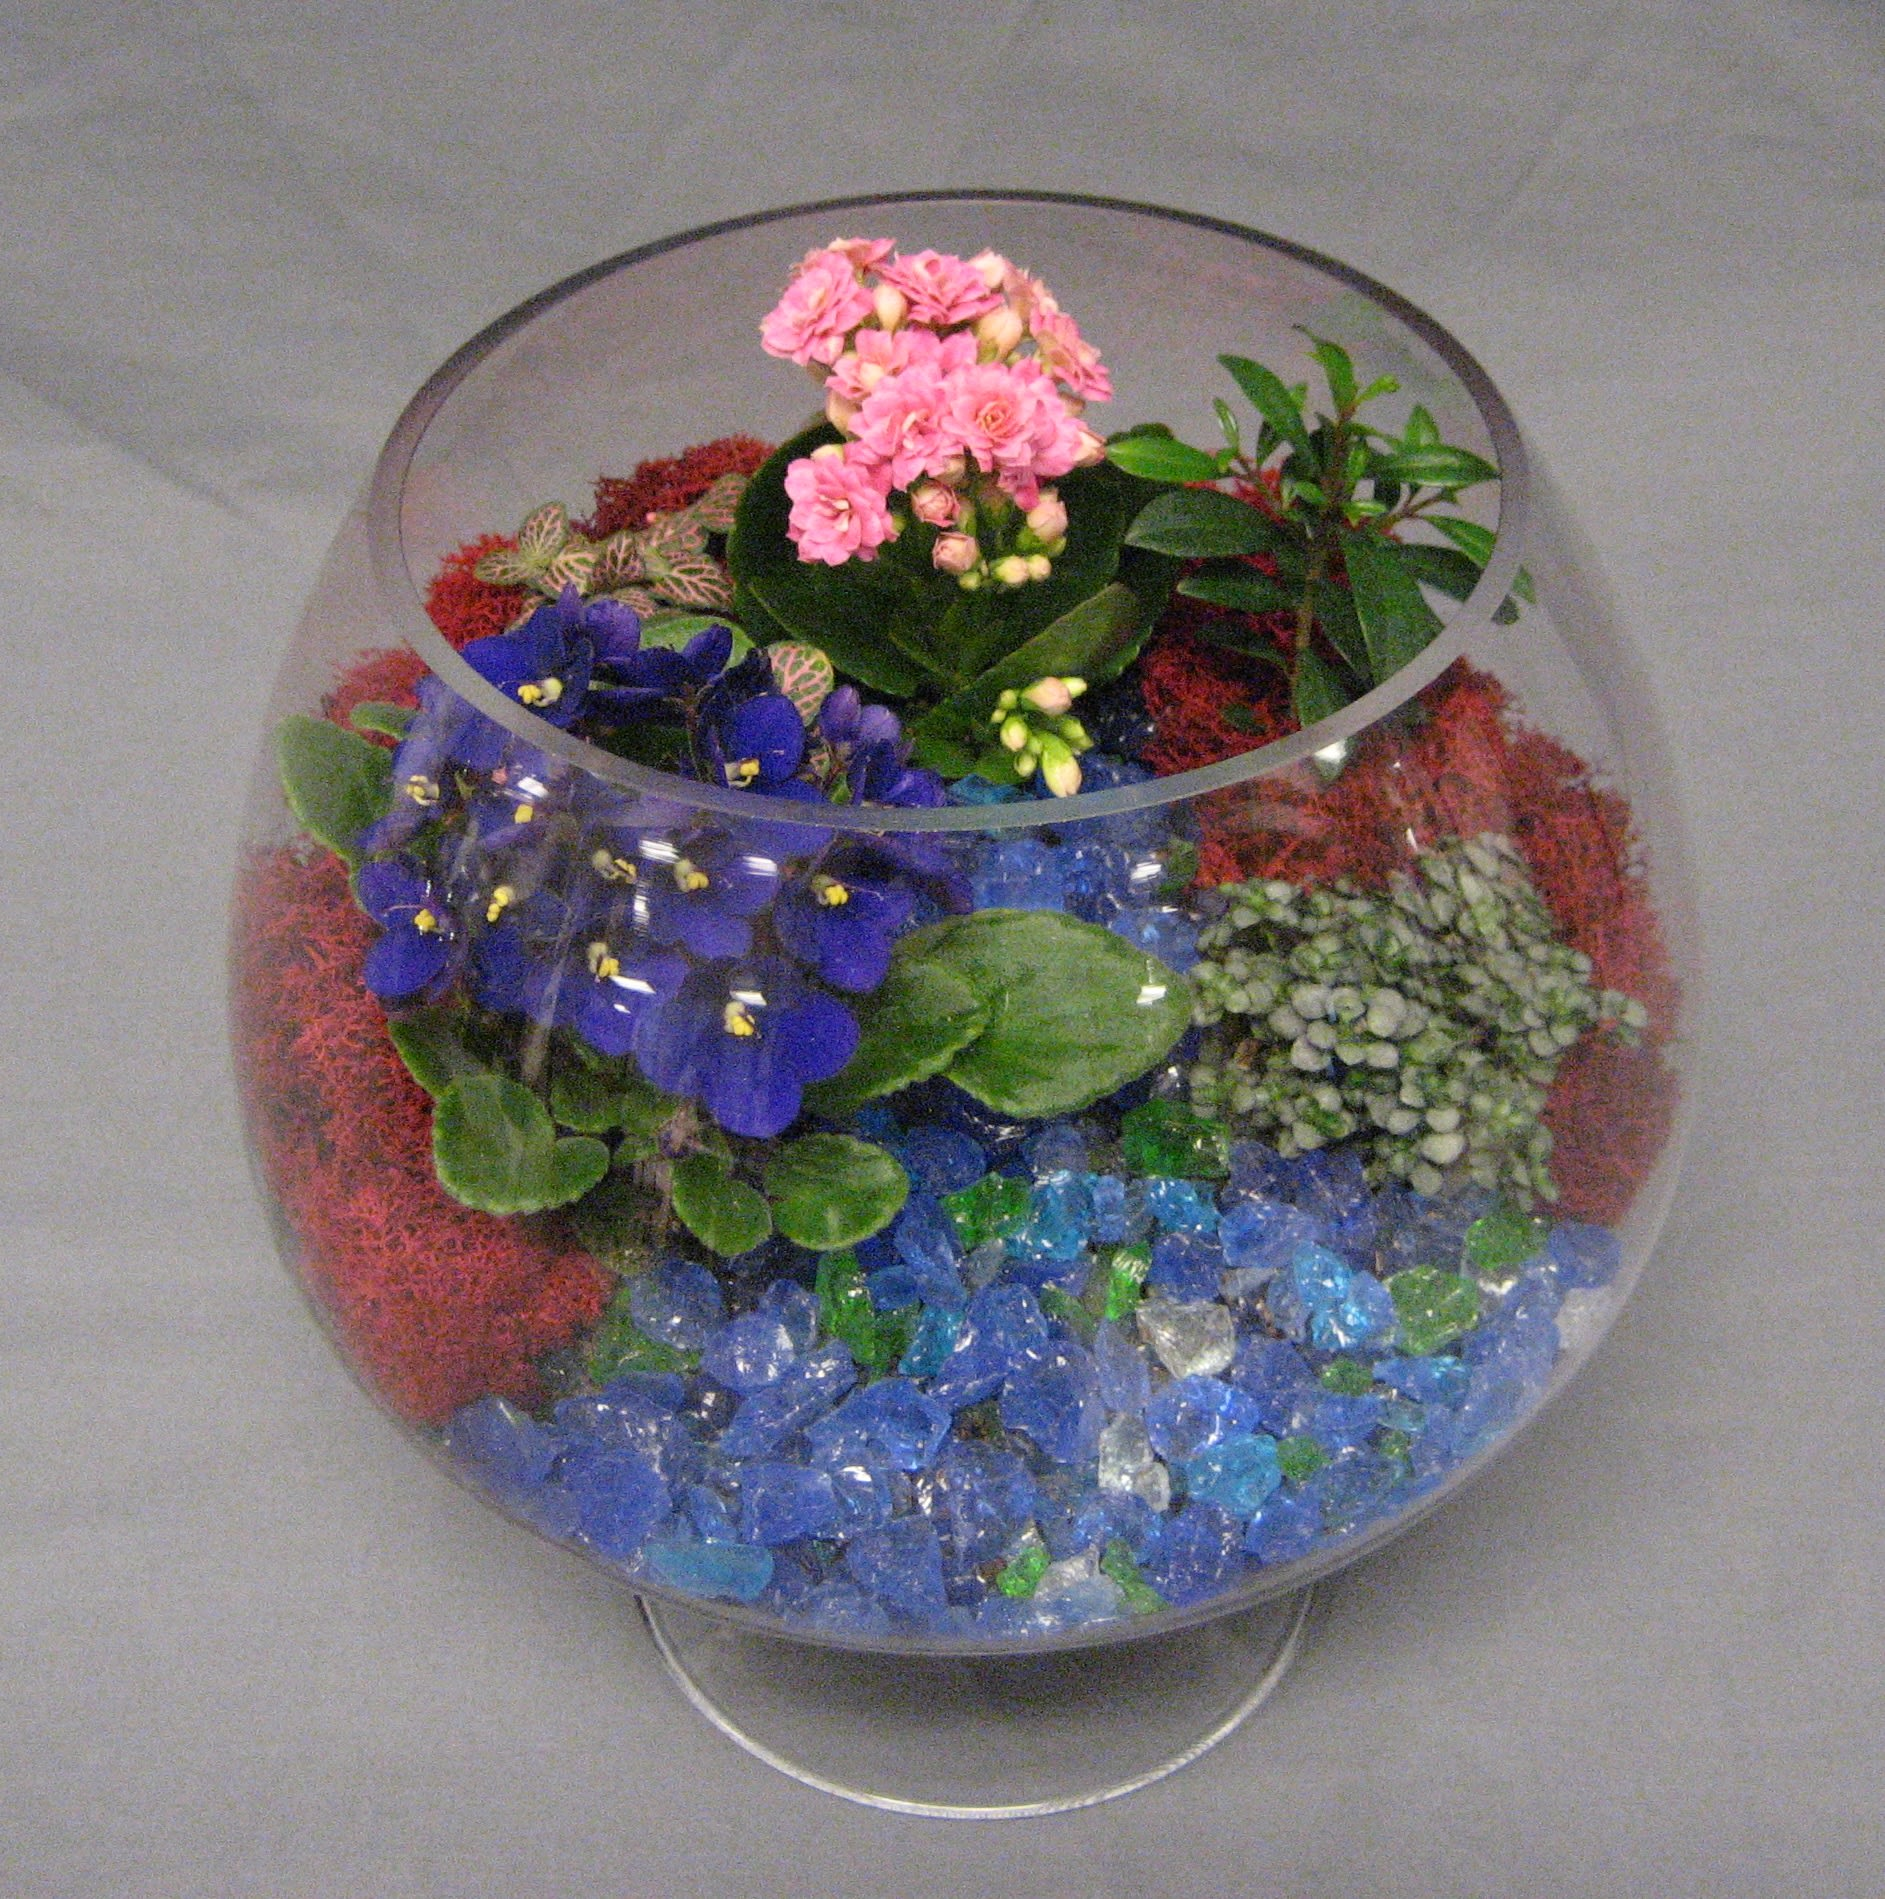 Terrarium Gh002 Terrarium Gh002 45 00 Same Day Delivery Add